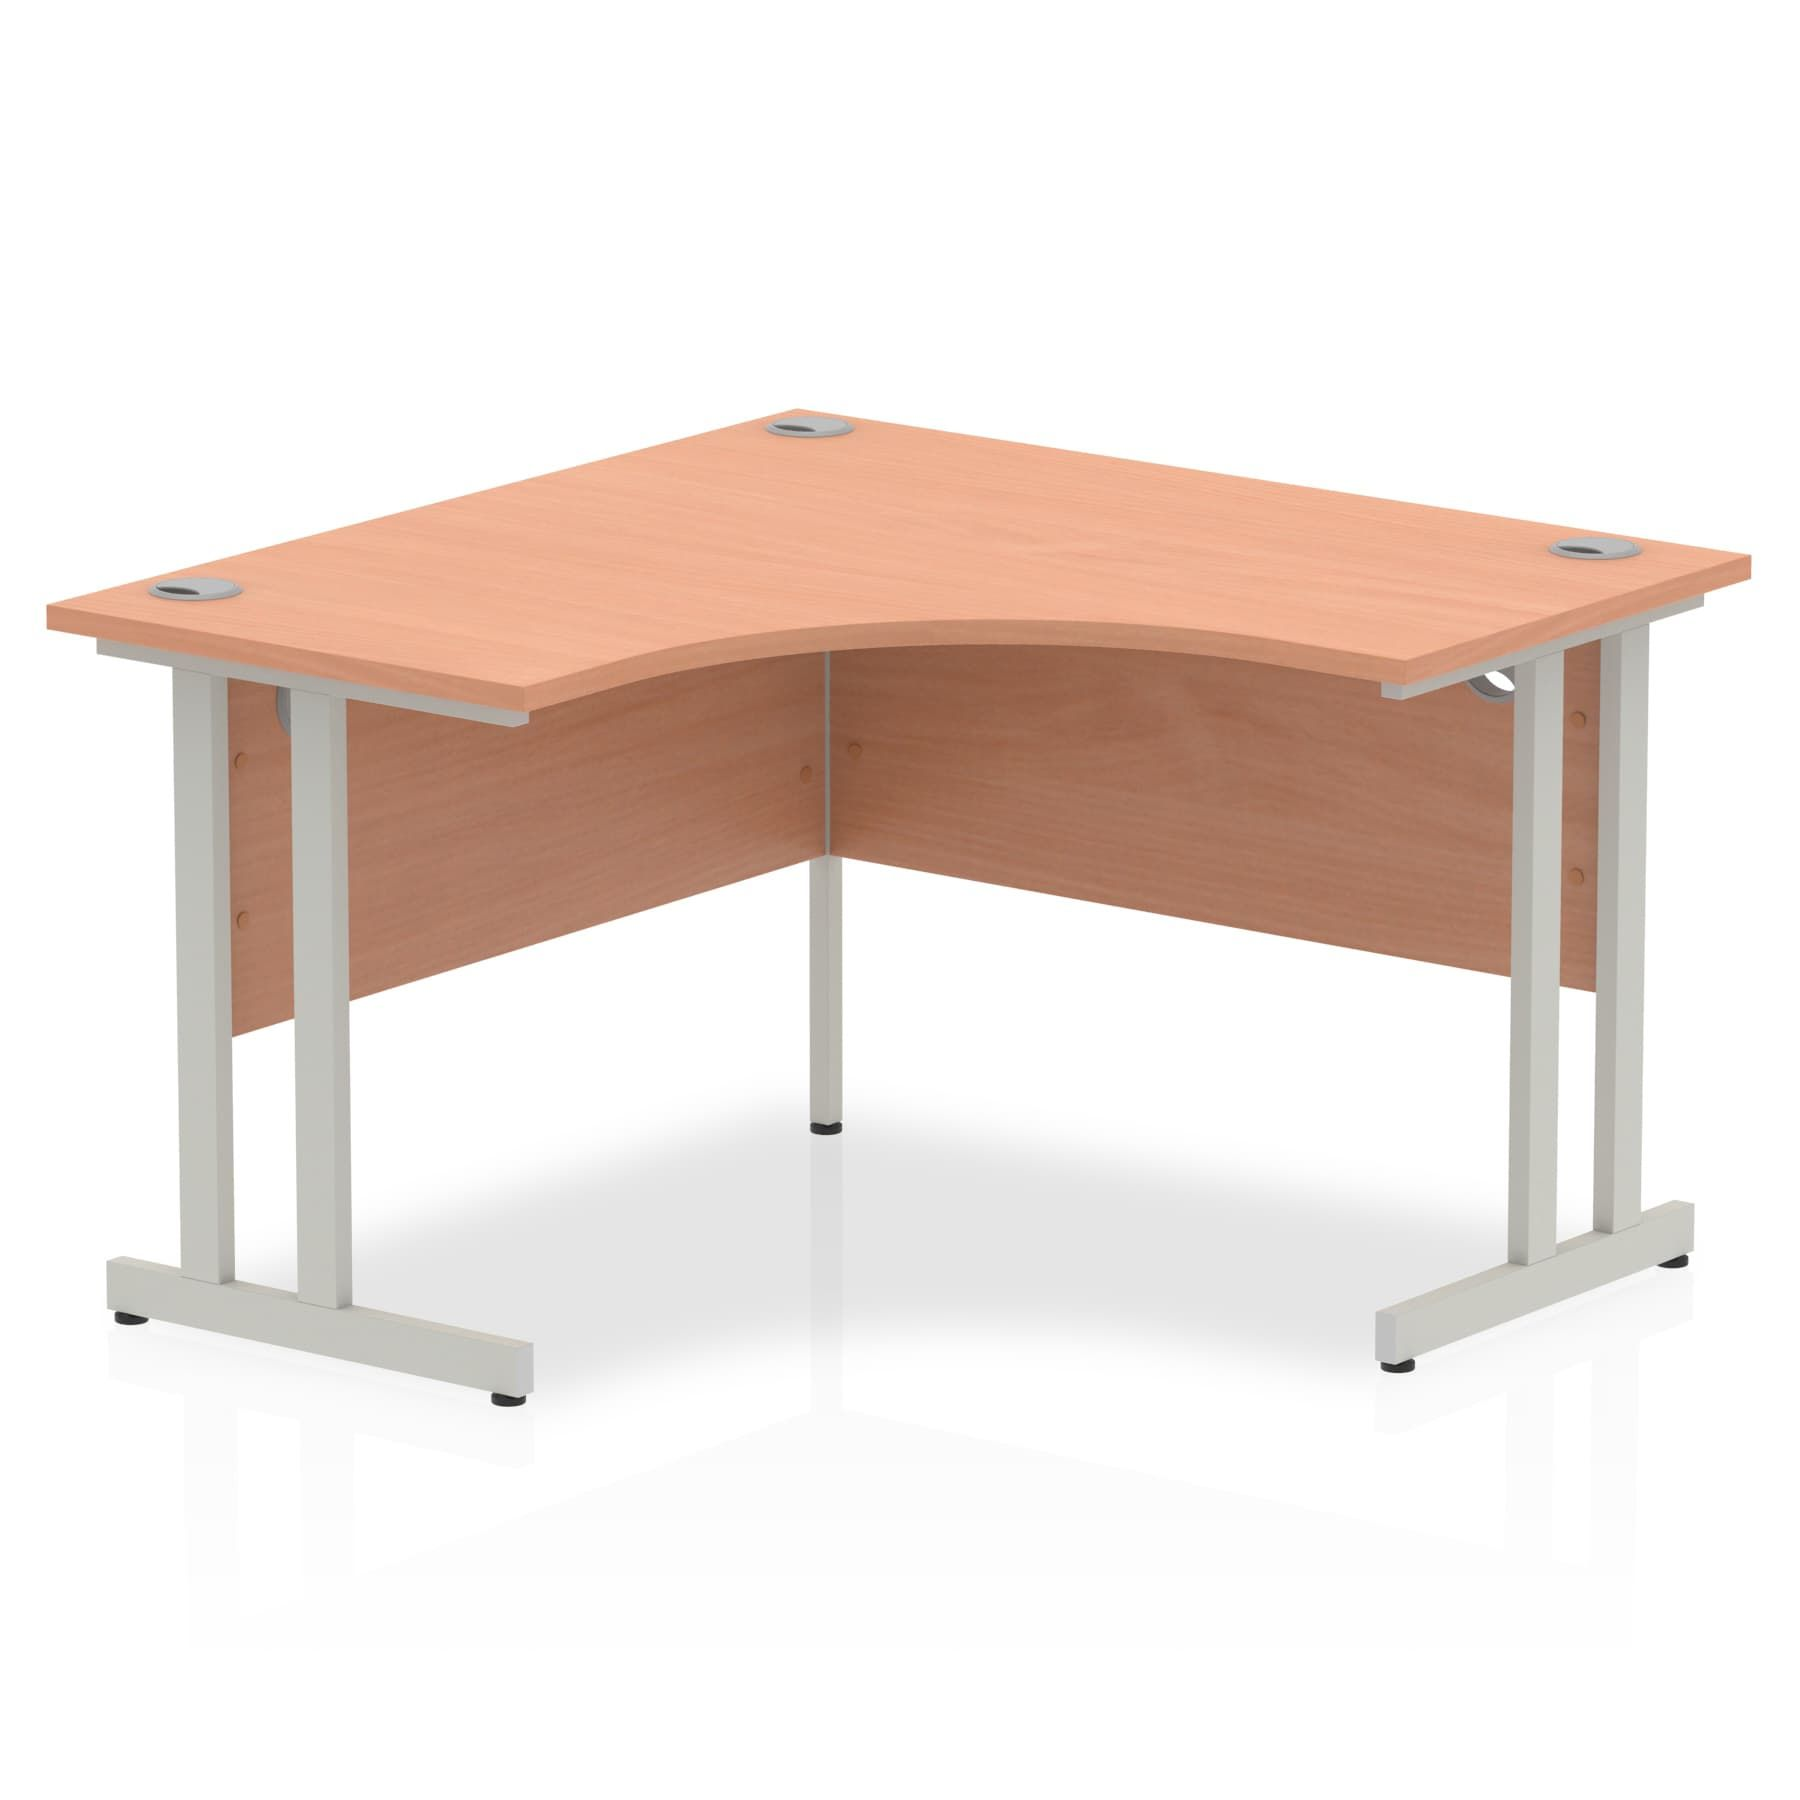 Impulse 1200 Corner Desk with Cantilever Leg